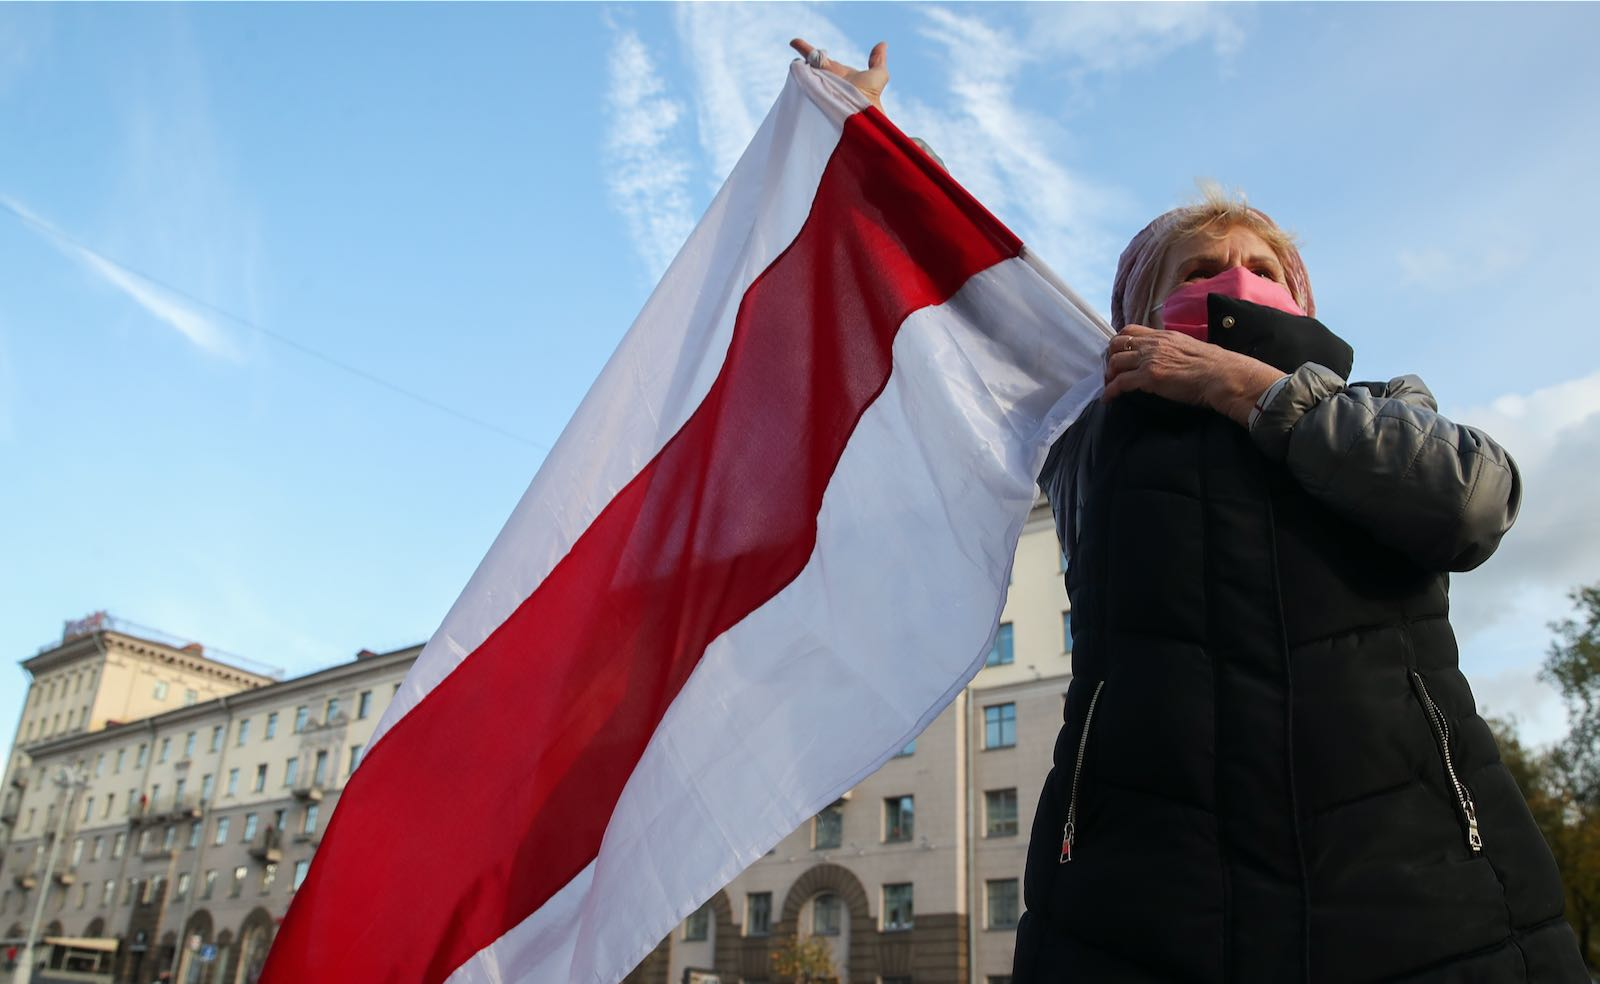 Protester waving flag in Minsk, Belarus